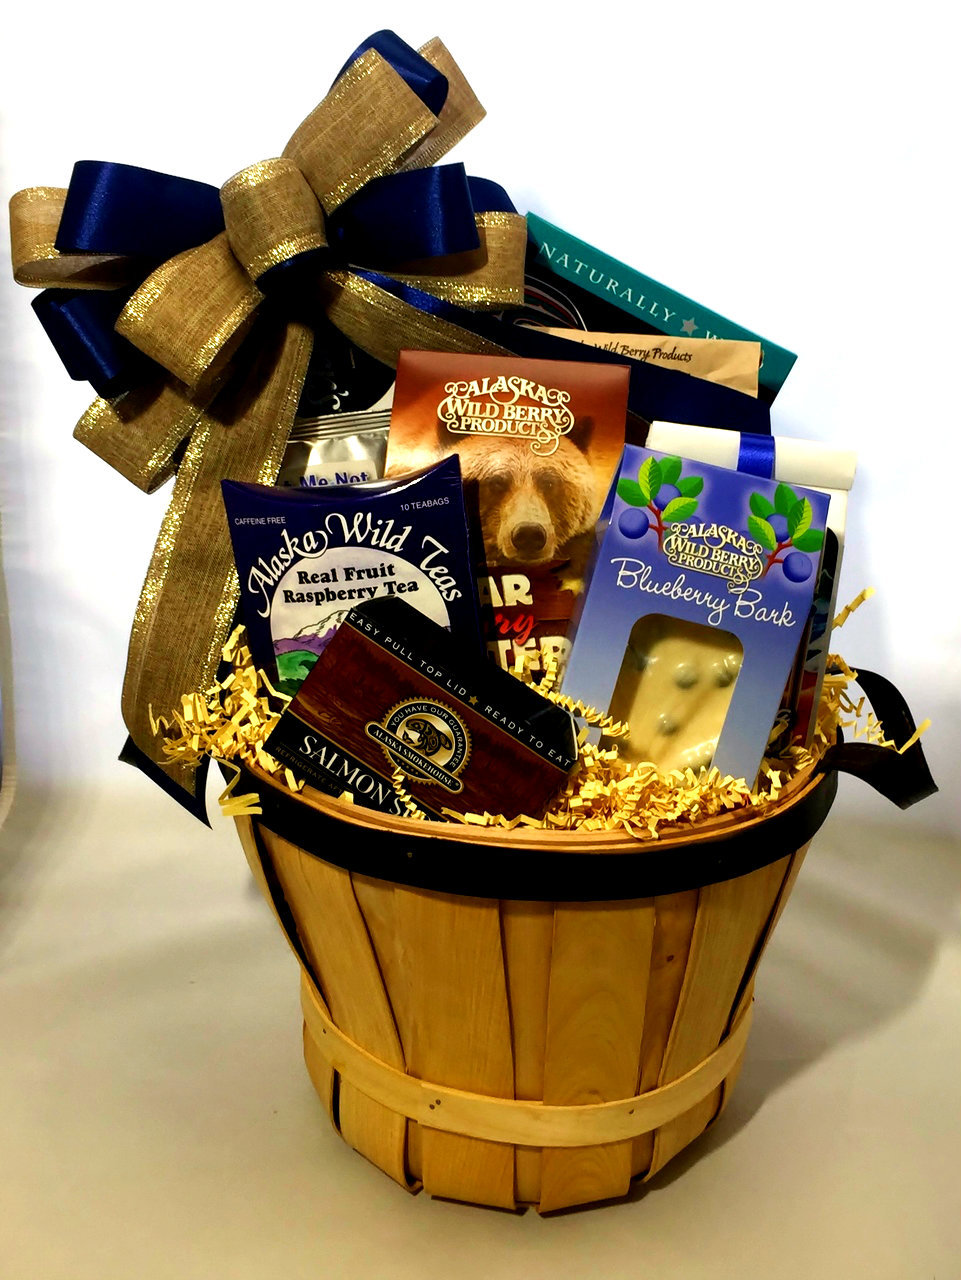 The Gifted Basket – Gift Baskets